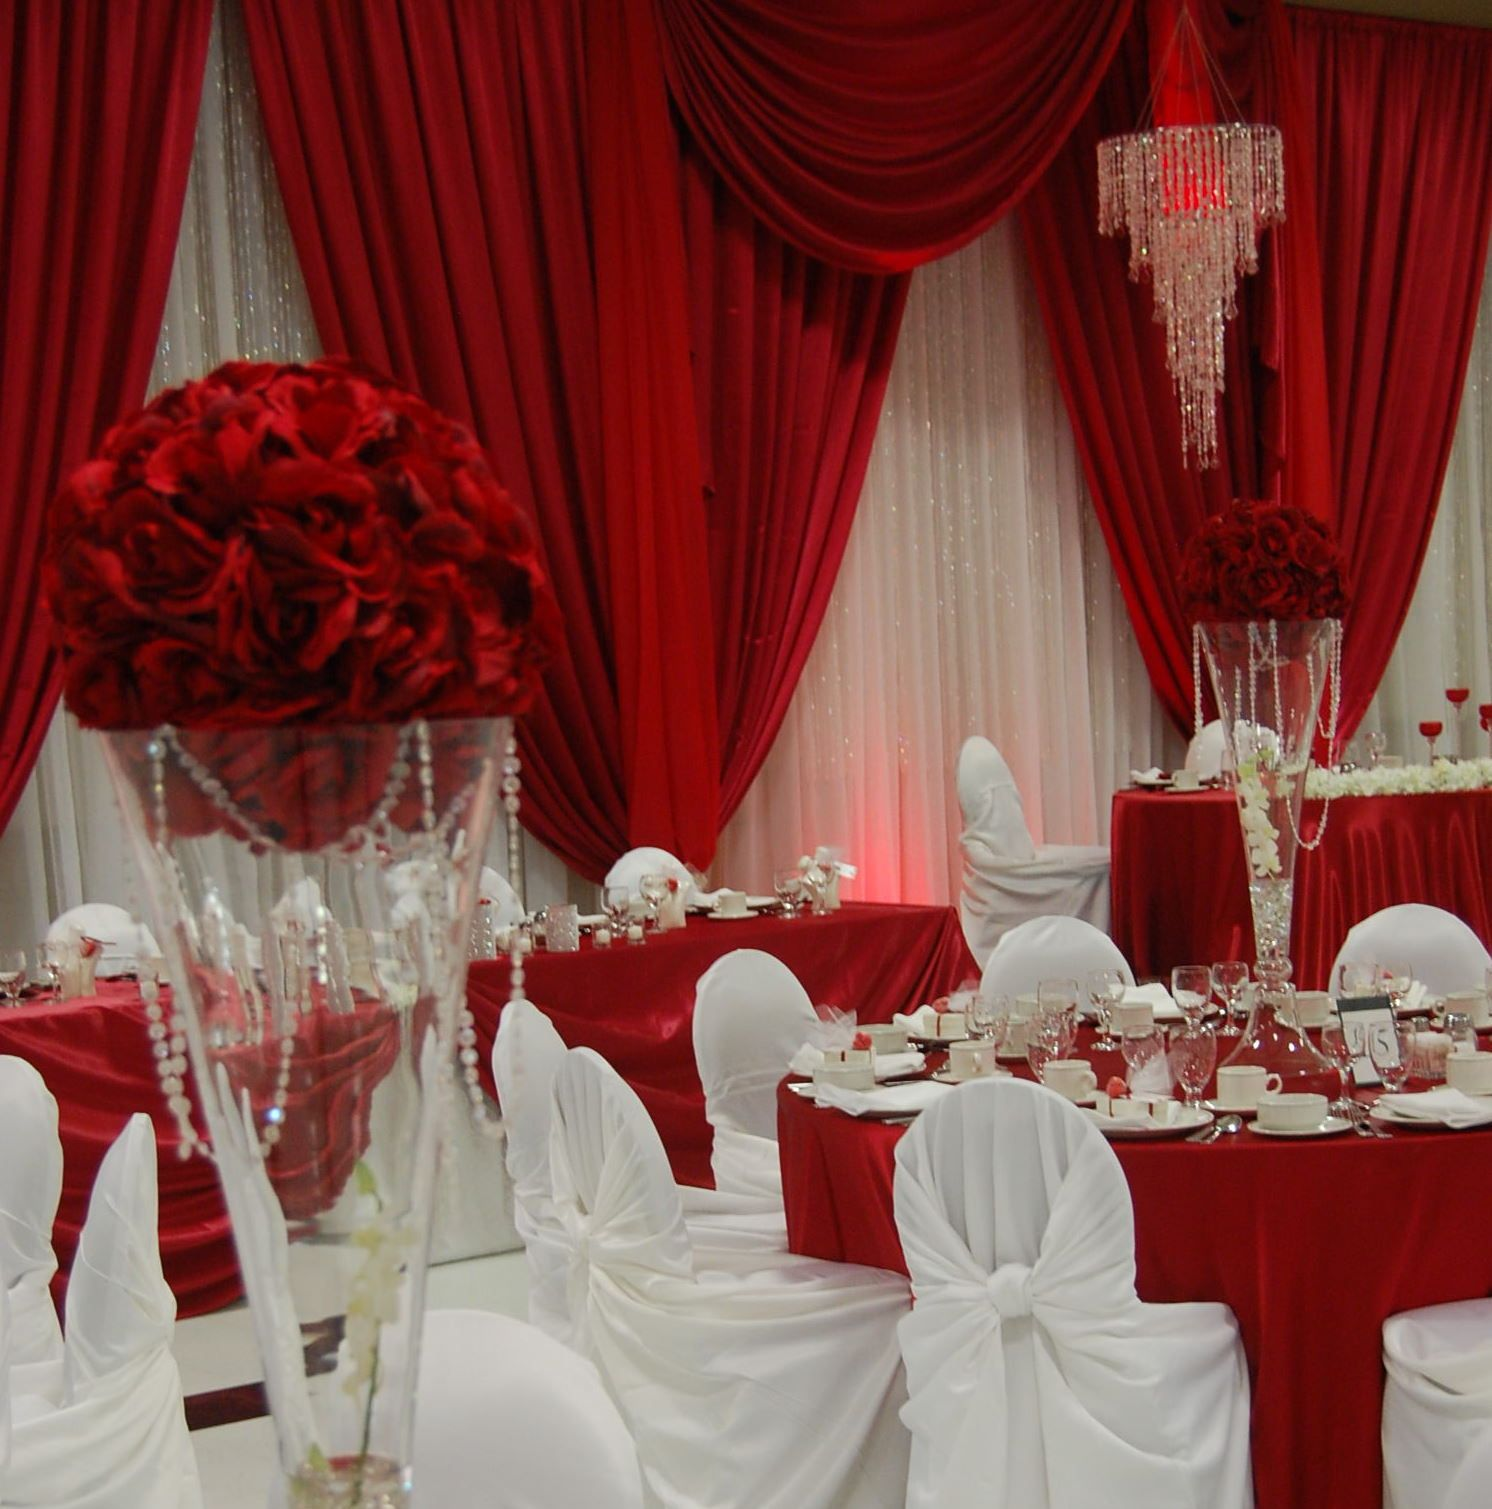 oh my never been a fan of red and white weddings but this one looks ...